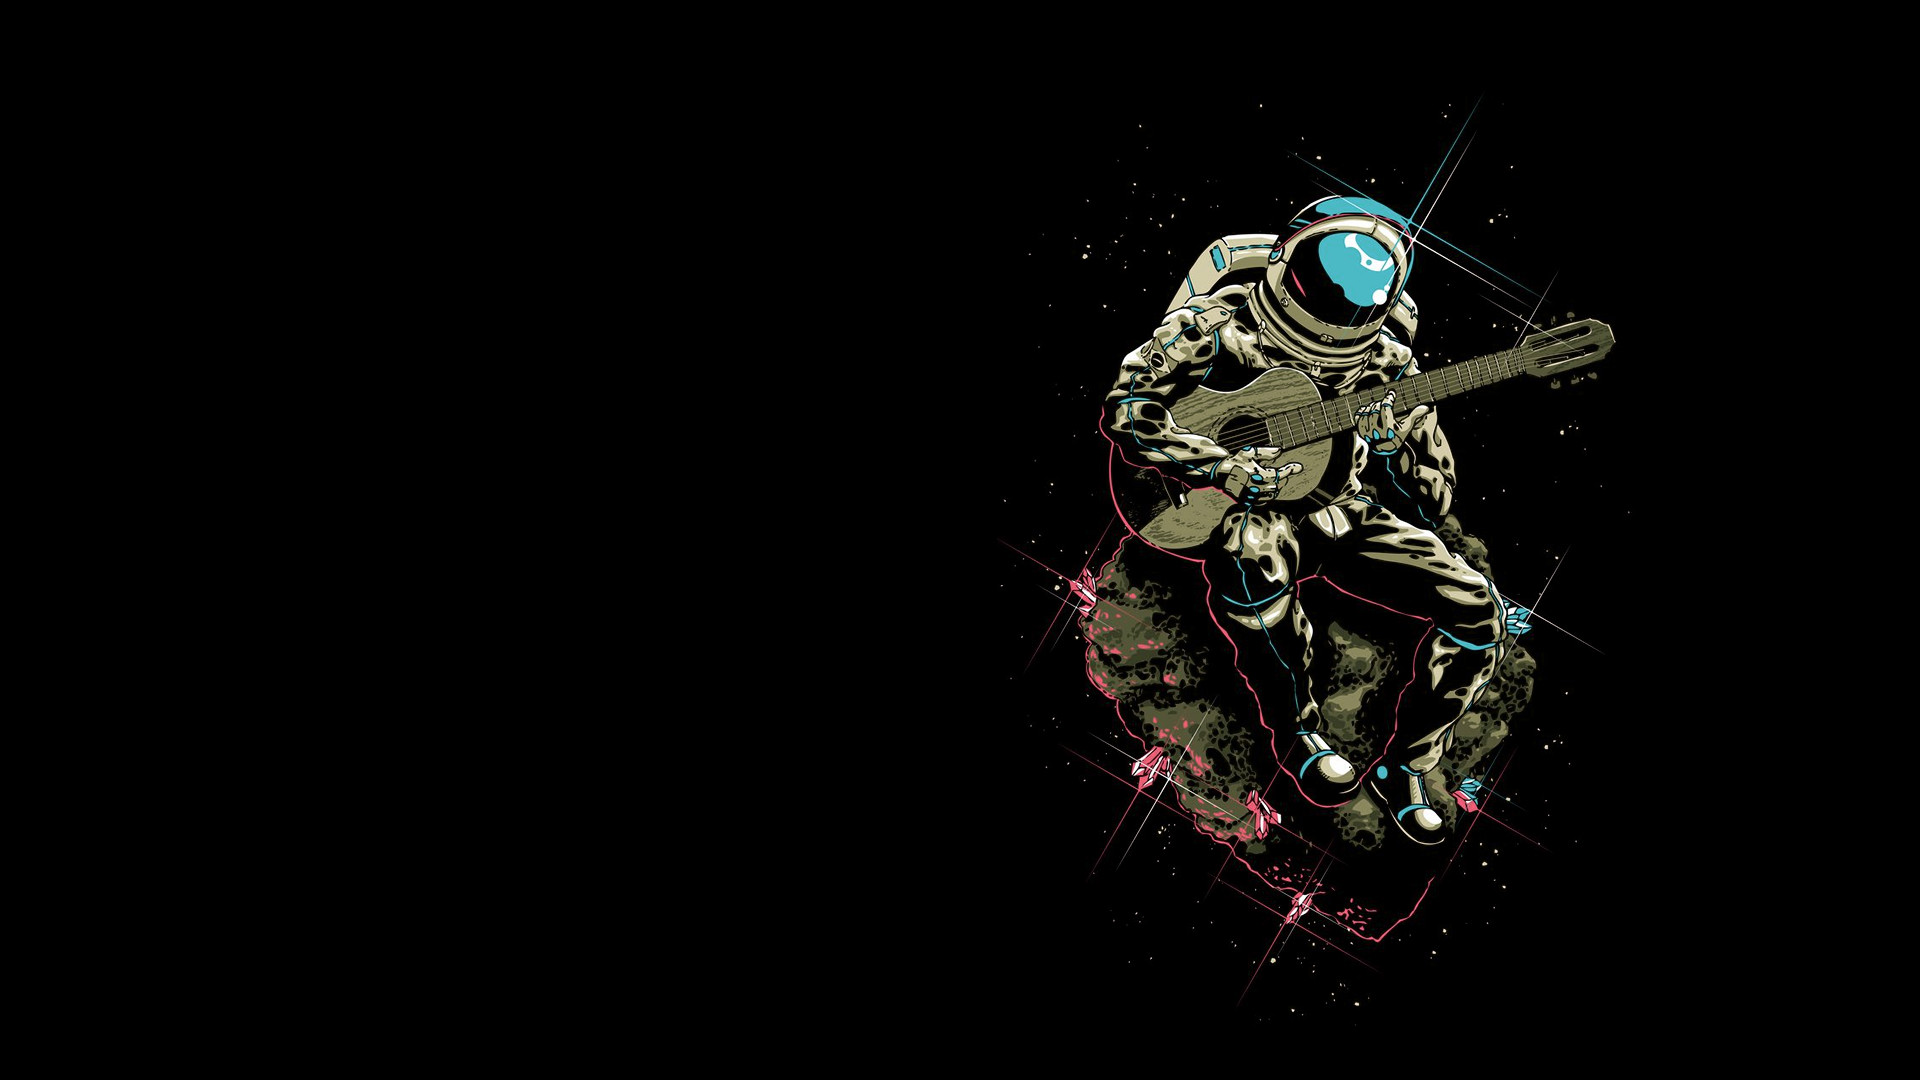 Res: 1920x1080, Astronaut Wallpapers, New Astronaut 100% Quality HD Wallpapers